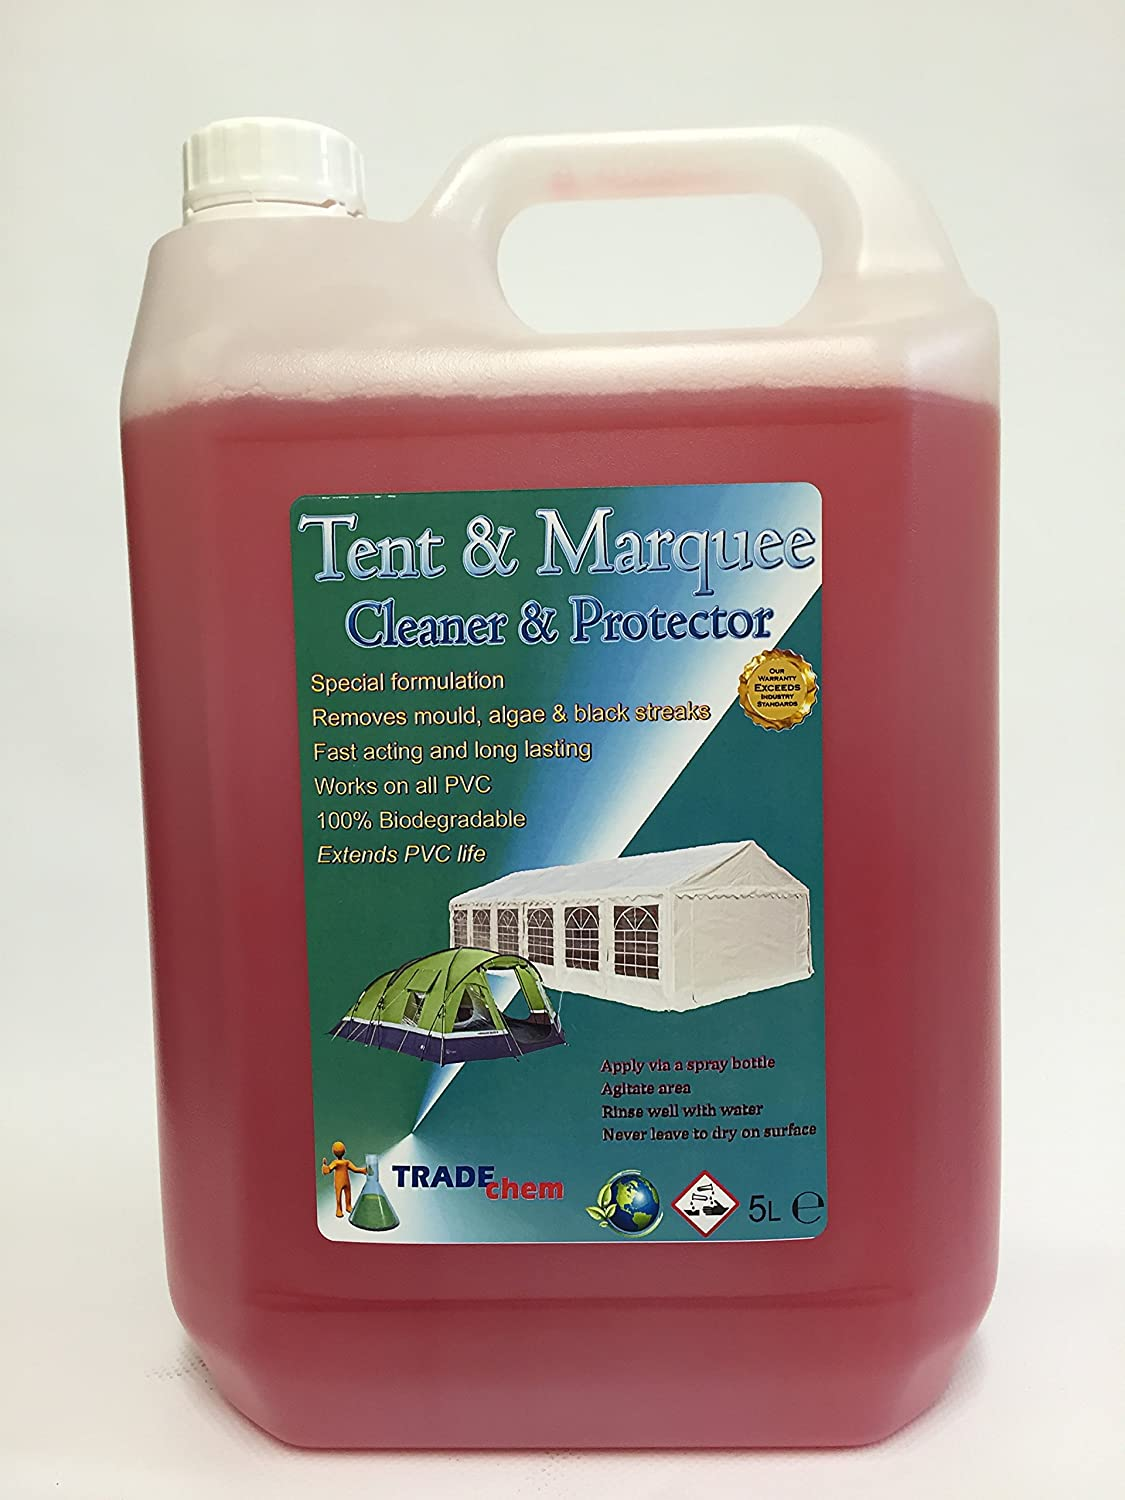 TENT / MARQUEE CLEANER u0026 PROTECTOR 5L (1) Amazon.co.uk Kitchen u0026 Home & TENT / MARQUEE CLEANER u0026 PROTECTOR 5L (1): Amazon.co.uk: Kitchen ...